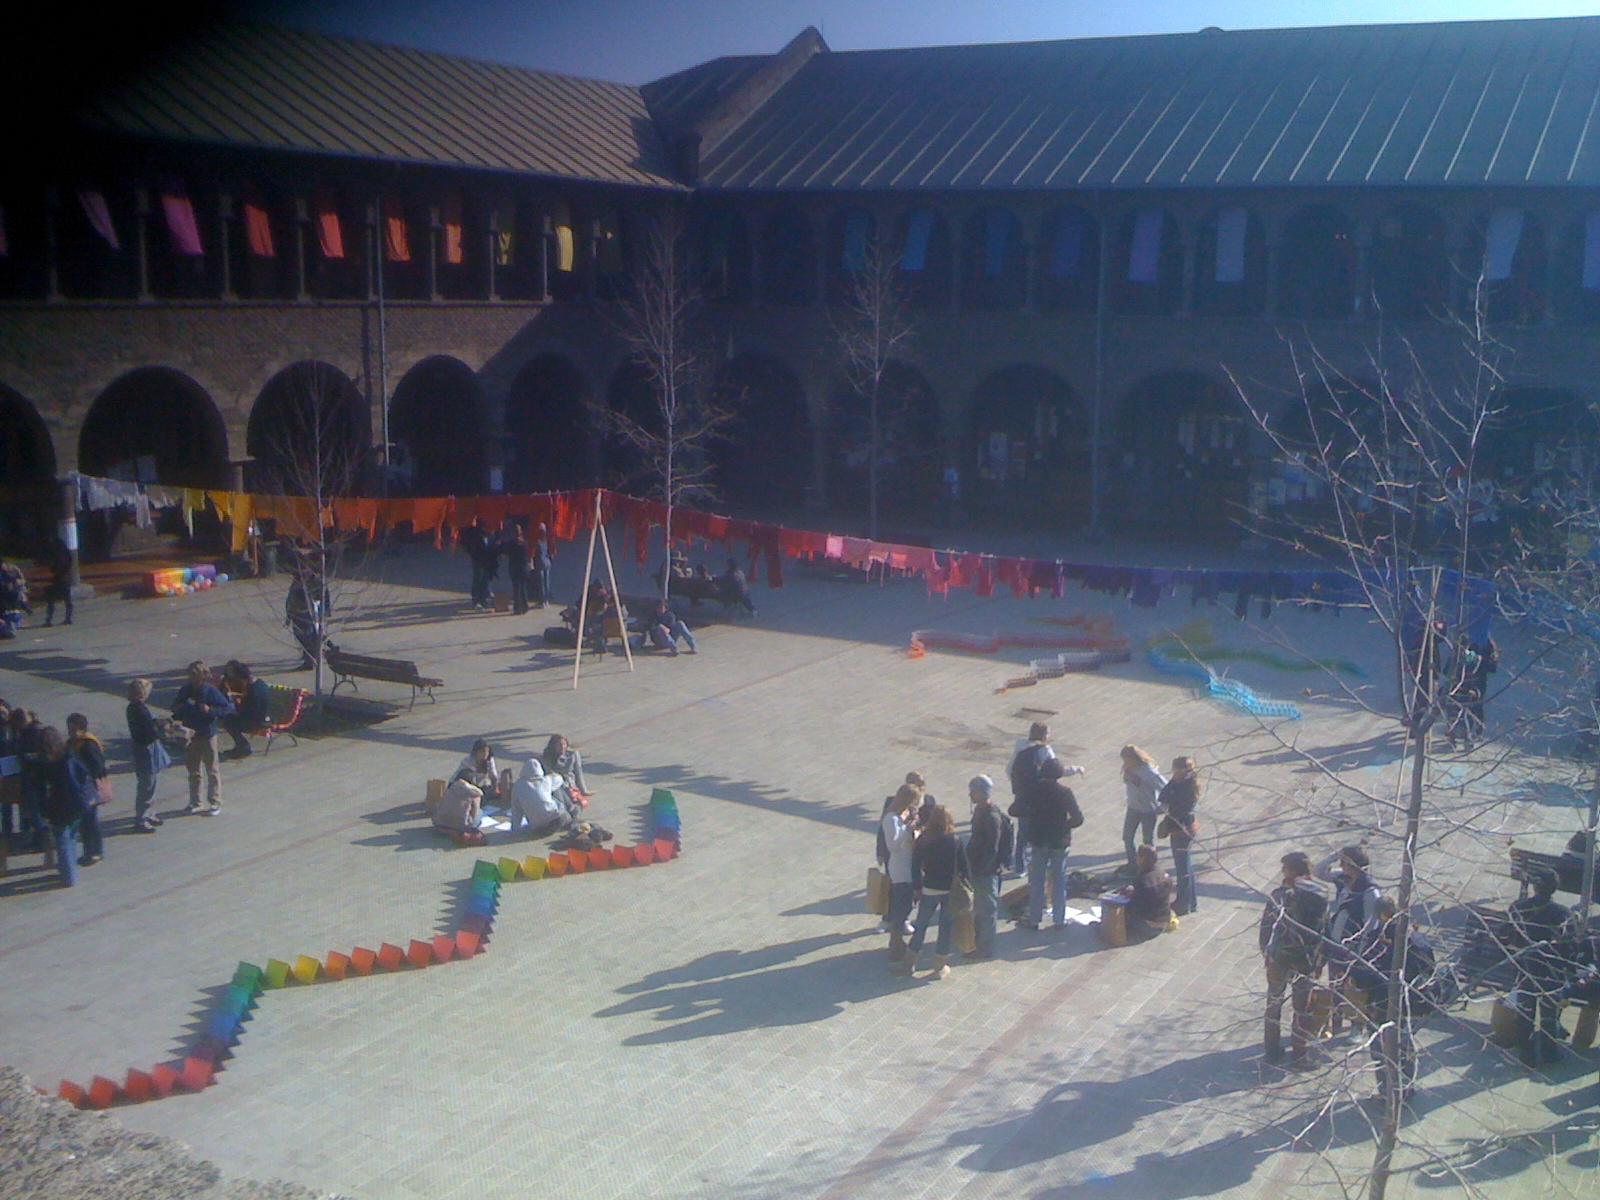 The central courtyard had several very colorful artistic displays.